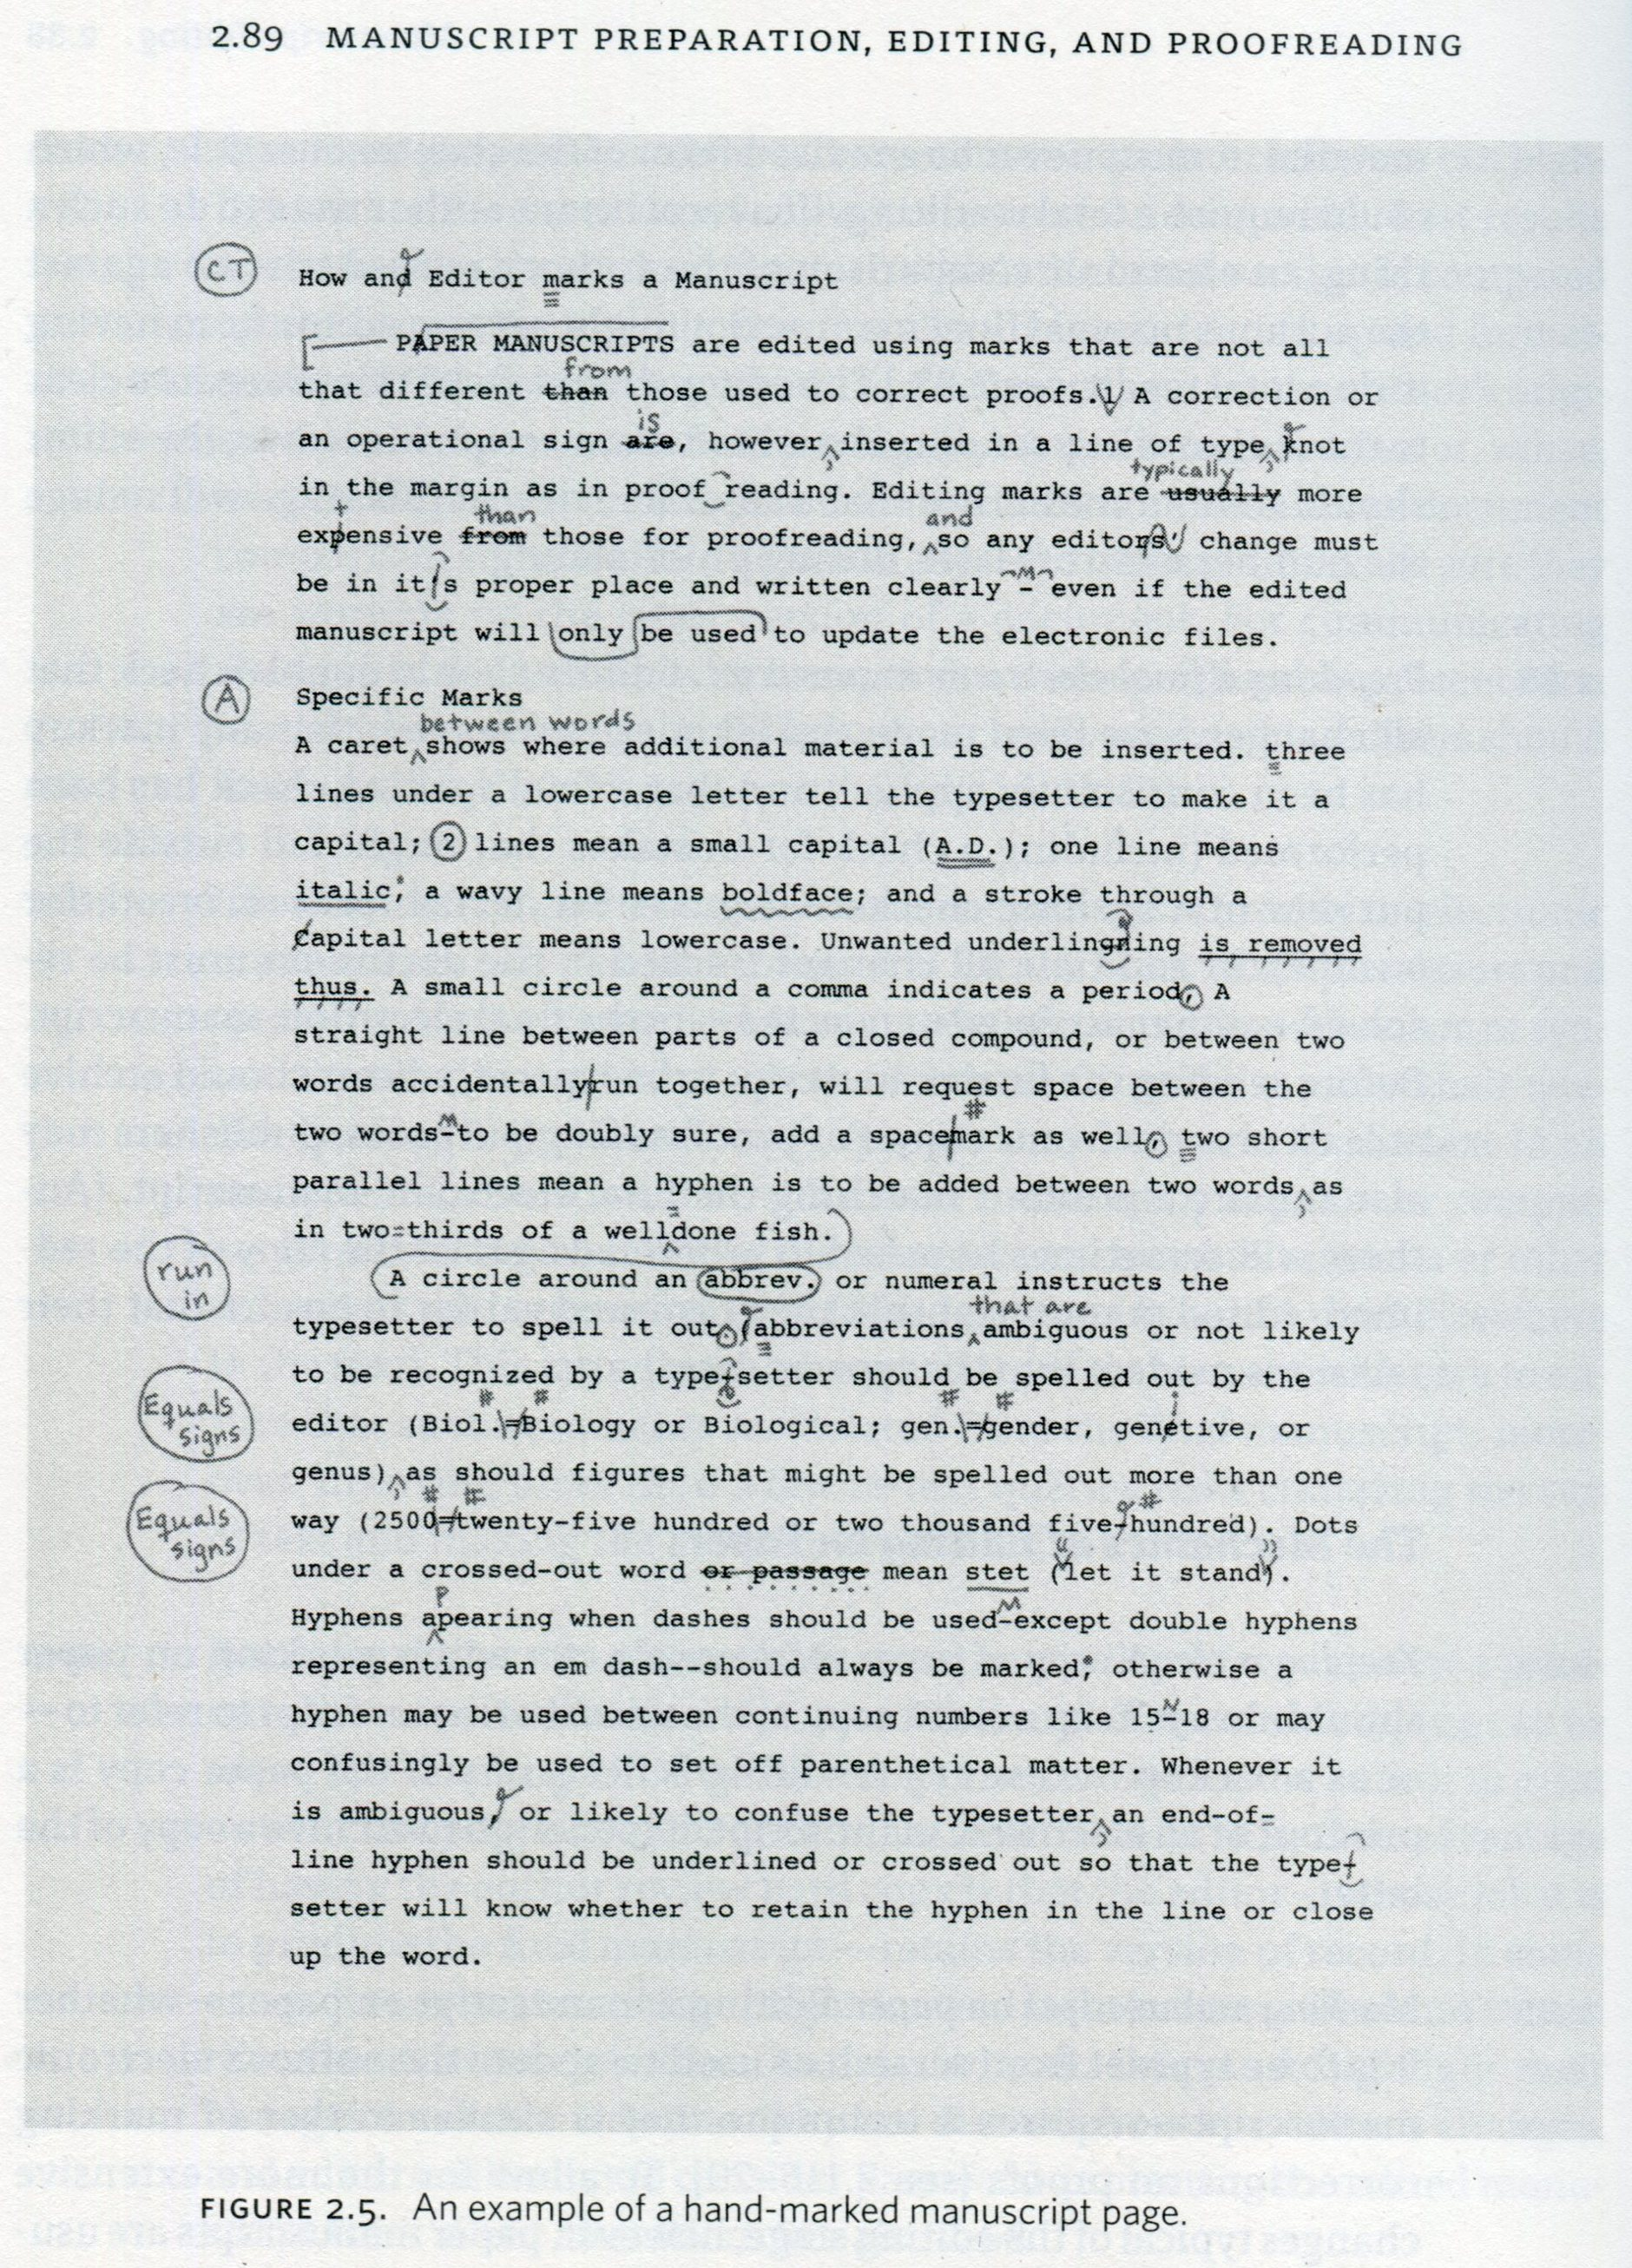 Editing ms. page (Chicago Manual).jpg